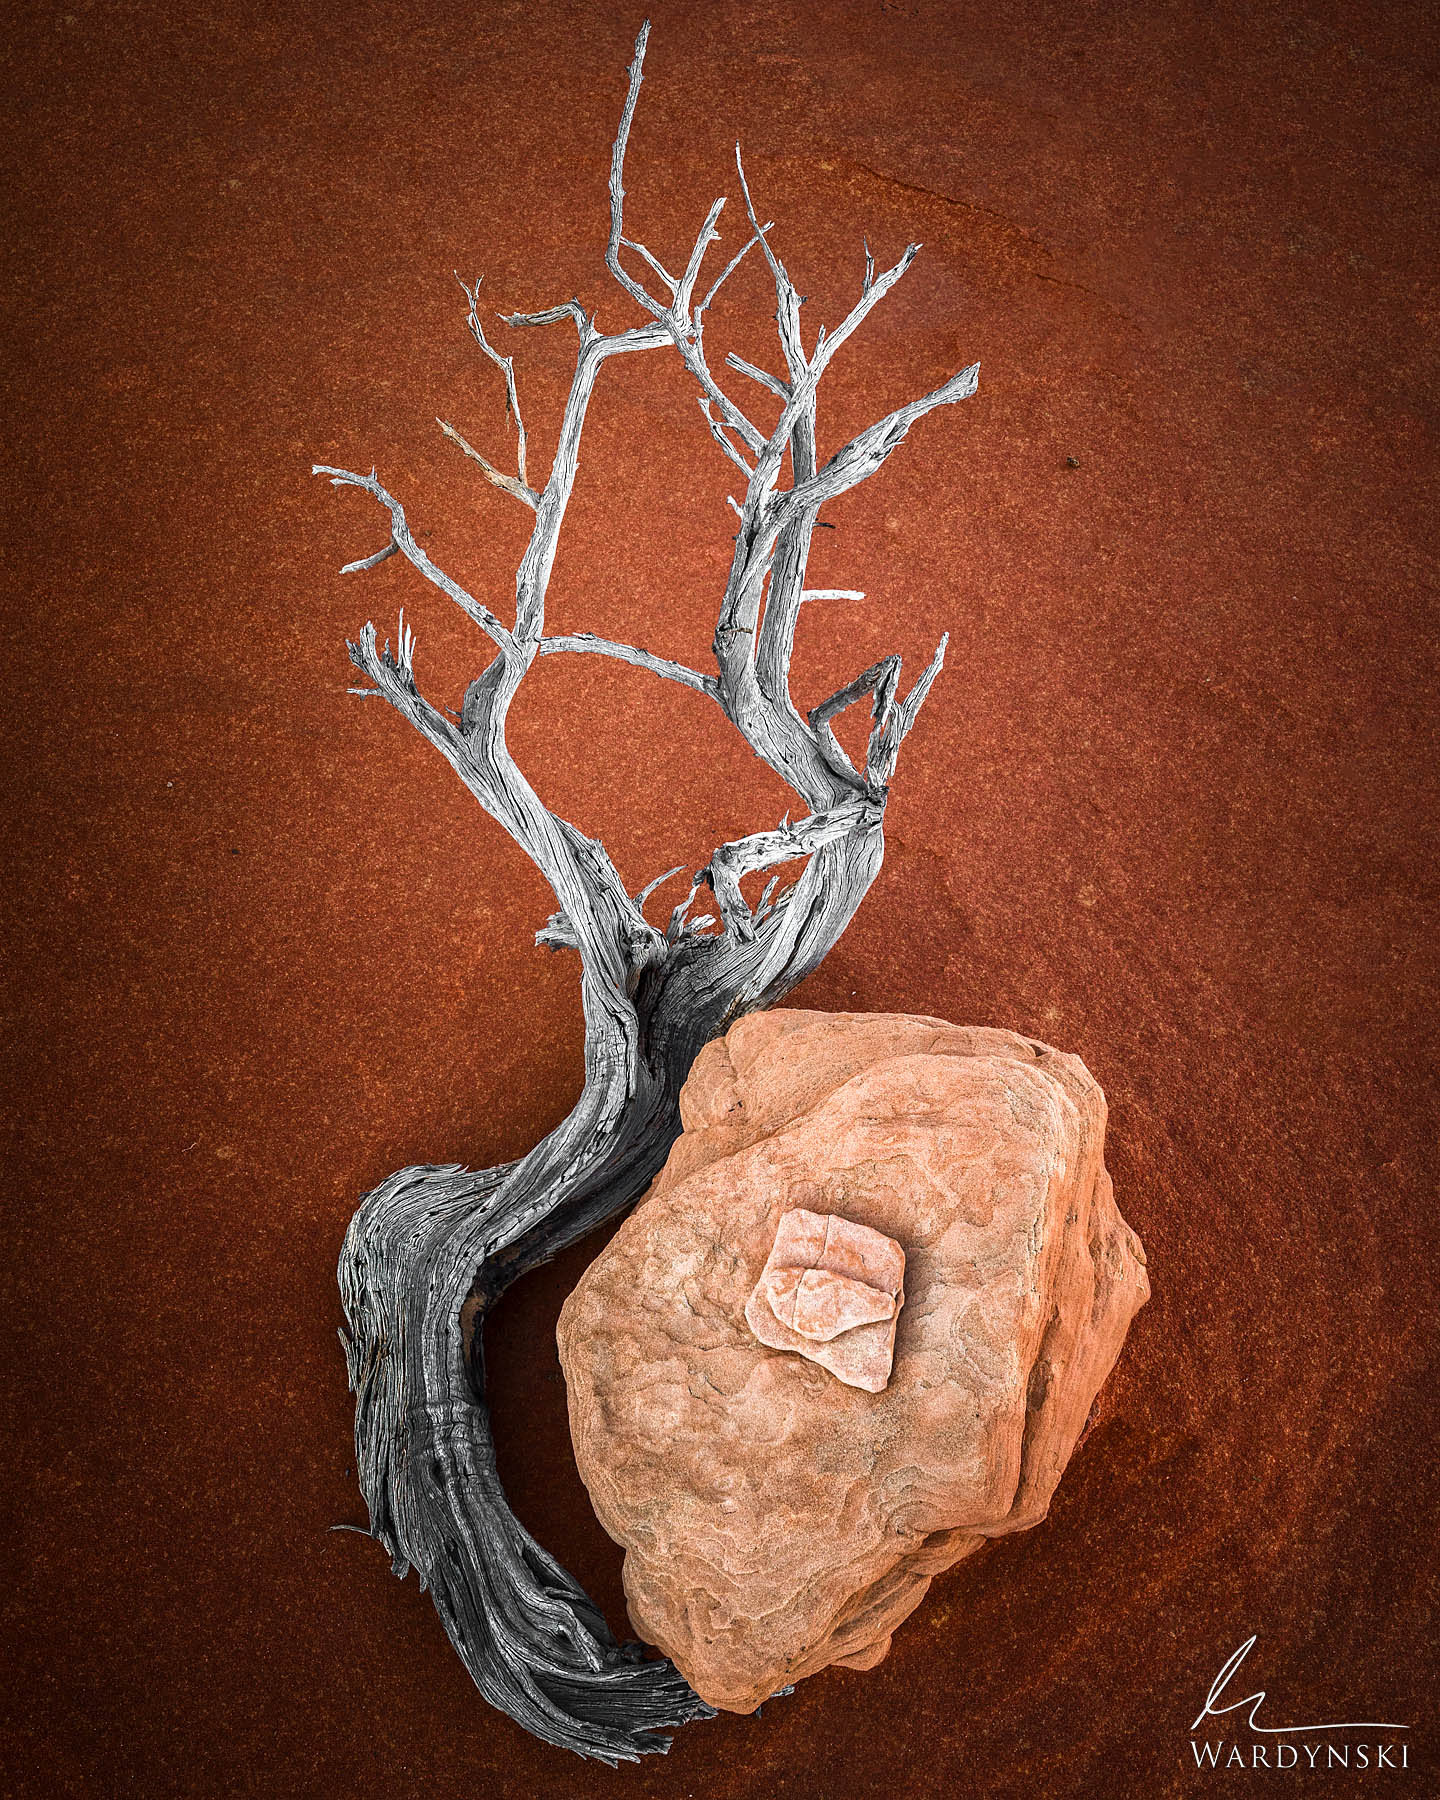 Fine Art Print | Limited Edition of 50 Like pieces of a puzzle, a sandstone rock fits into the curve of a dry branch on the desert...